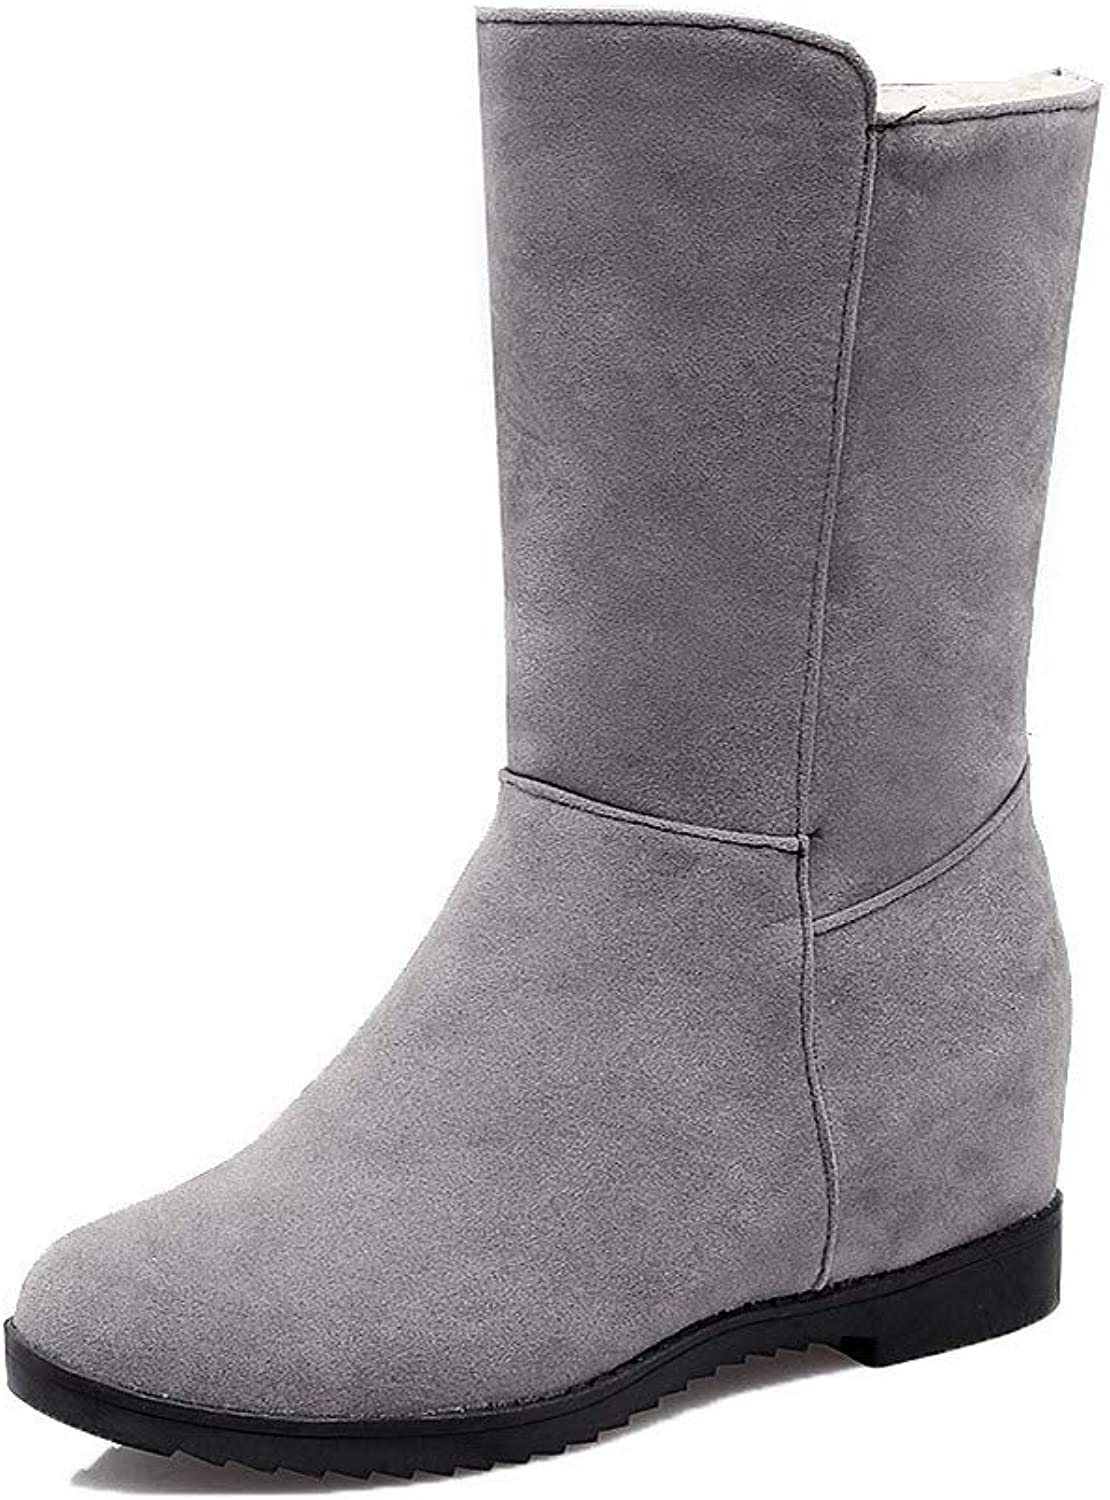 WeiPoot Women's Pull-On Round-Toe Kitten-Heels Frosted Low-Top Boots, EGHXH117106